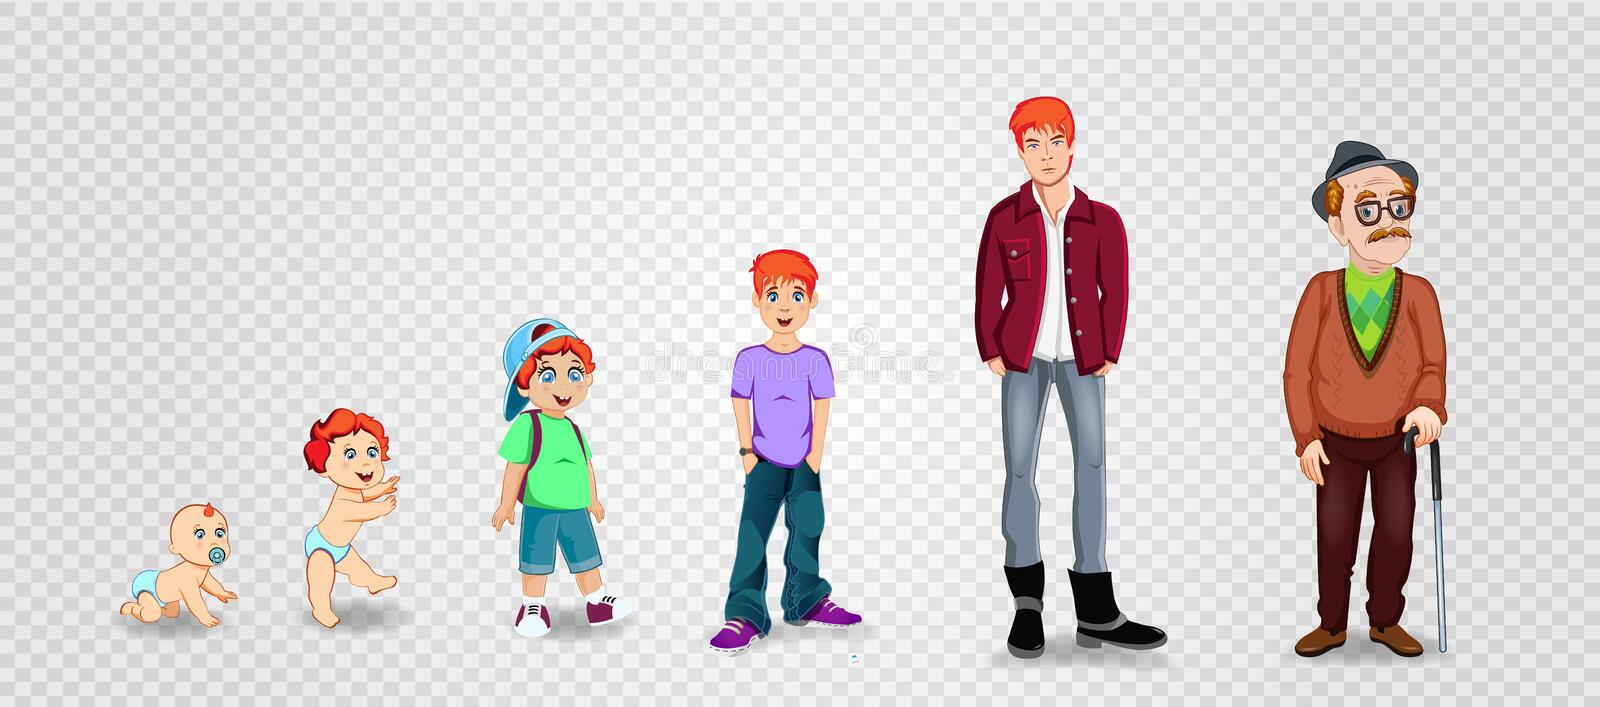 Character man in different ages. Baby, child, teenager, adult, elderly person. The life cycle. Generation of people and stages of growing up. Vector royalty free illustration